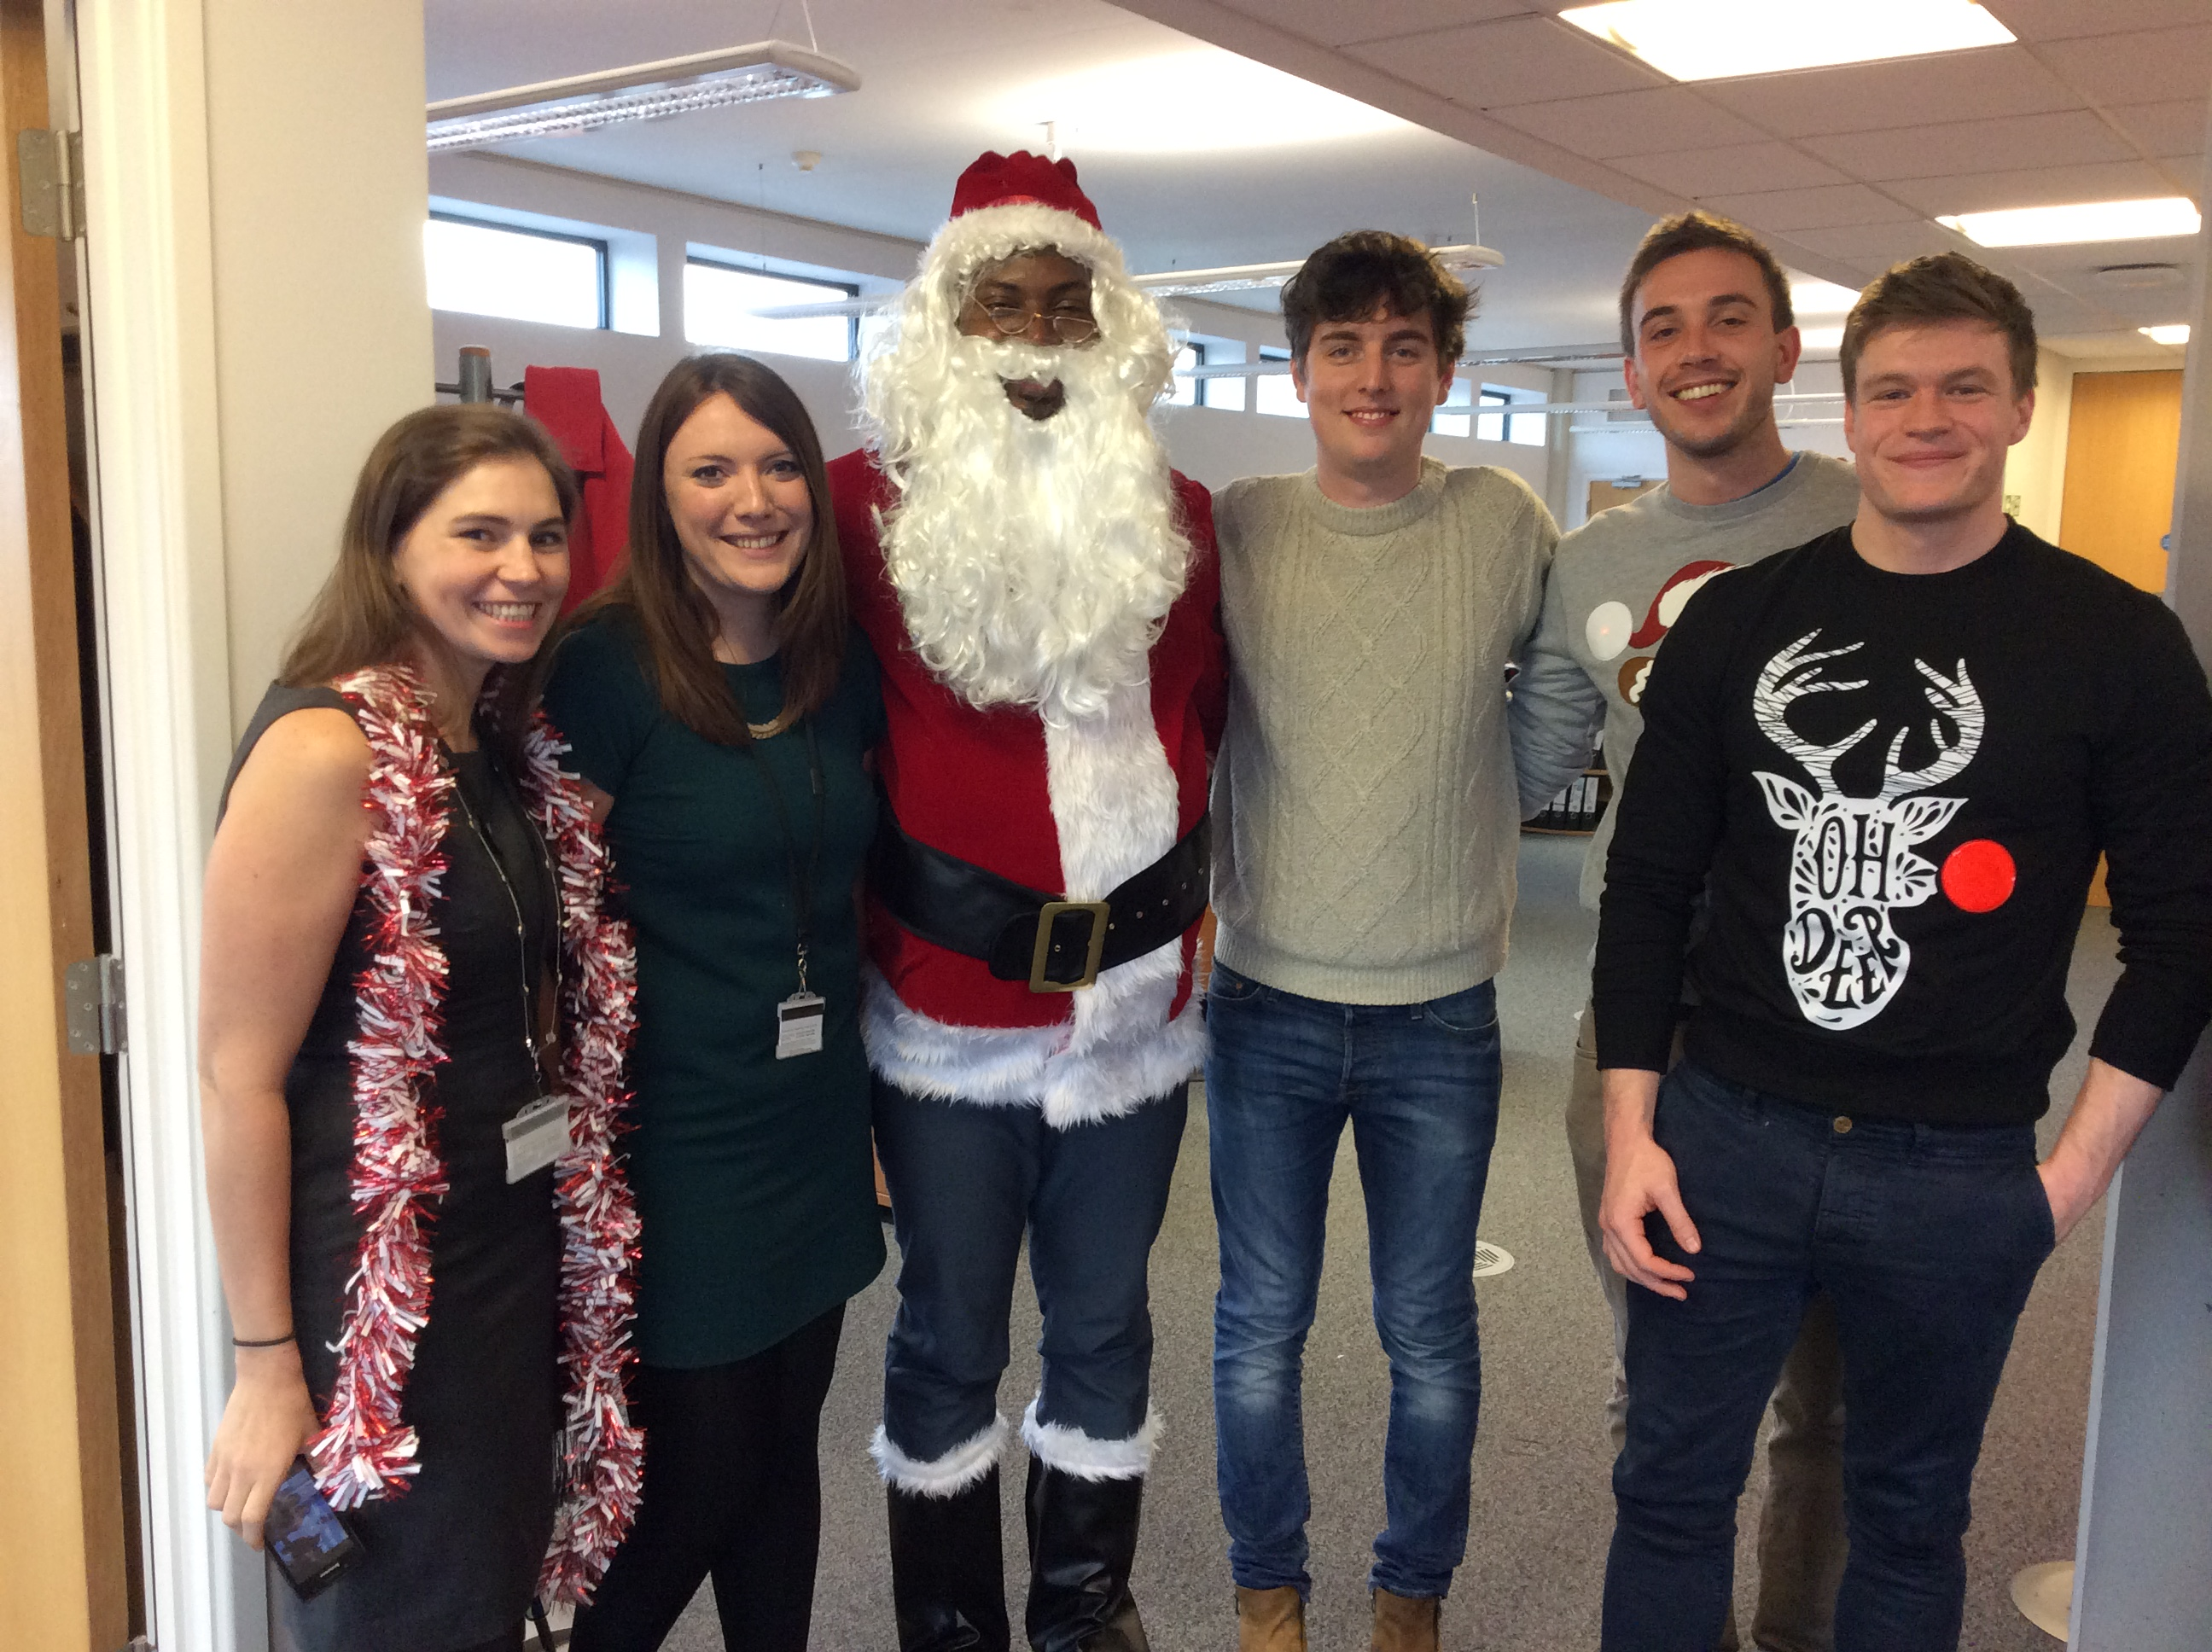 International Officers Emma, Hannah, Nduka (as Santa Claus), John, Luke and Tim